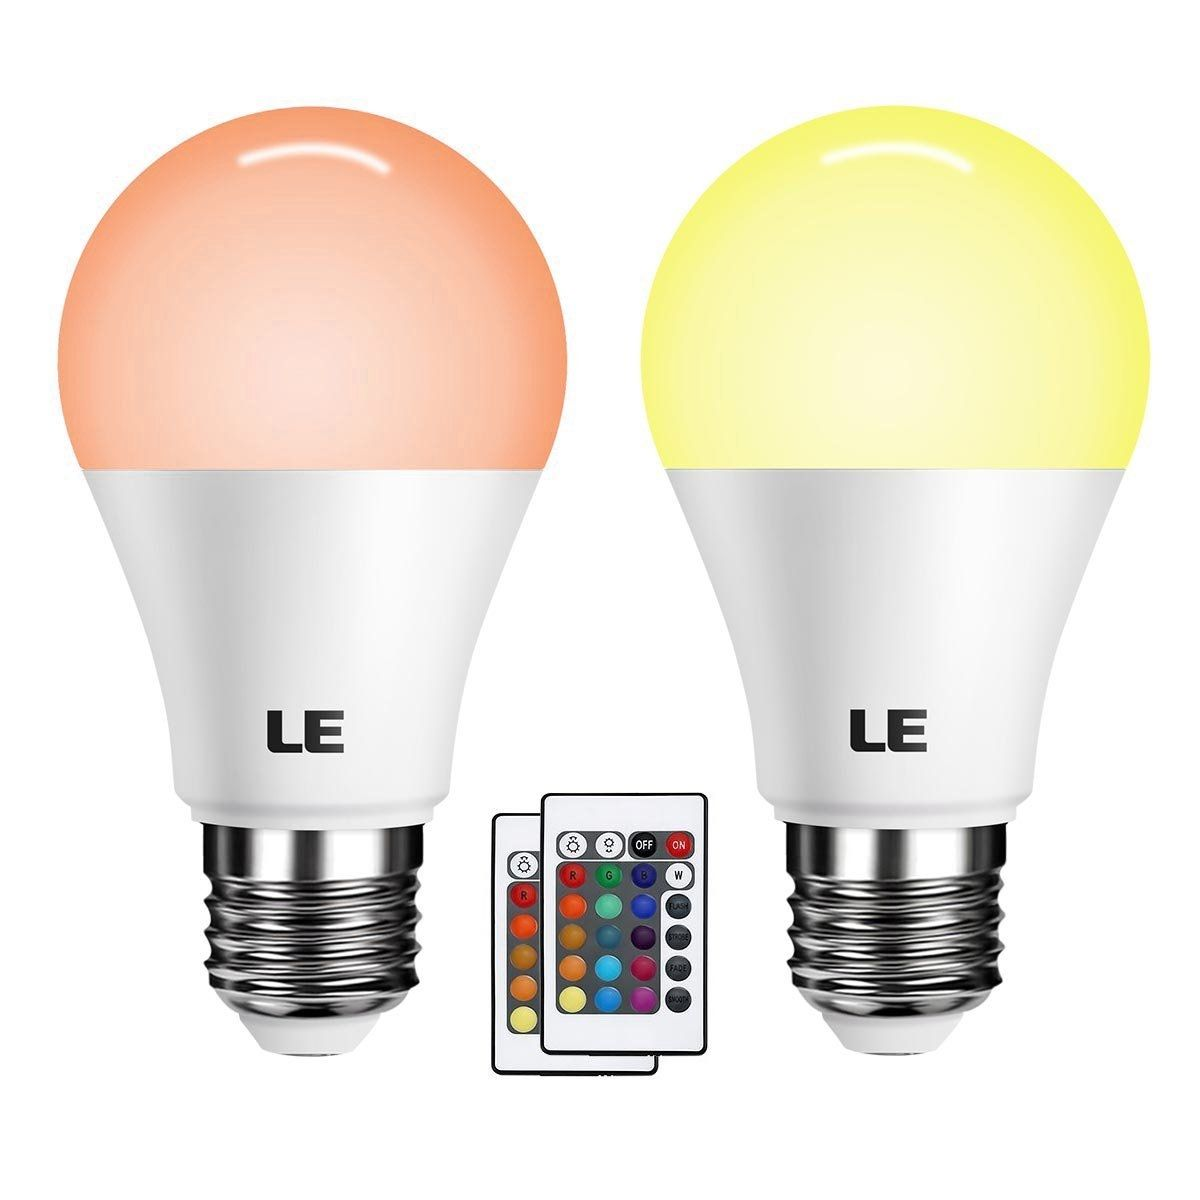 Le Color Changing Light Bulbs With Remote Dimmable Led Light Bulb E26 Screw Base Rgb Soft Warm White 40 Watt Equivalent 16 Color Choices For Home Decor Stage Party And More